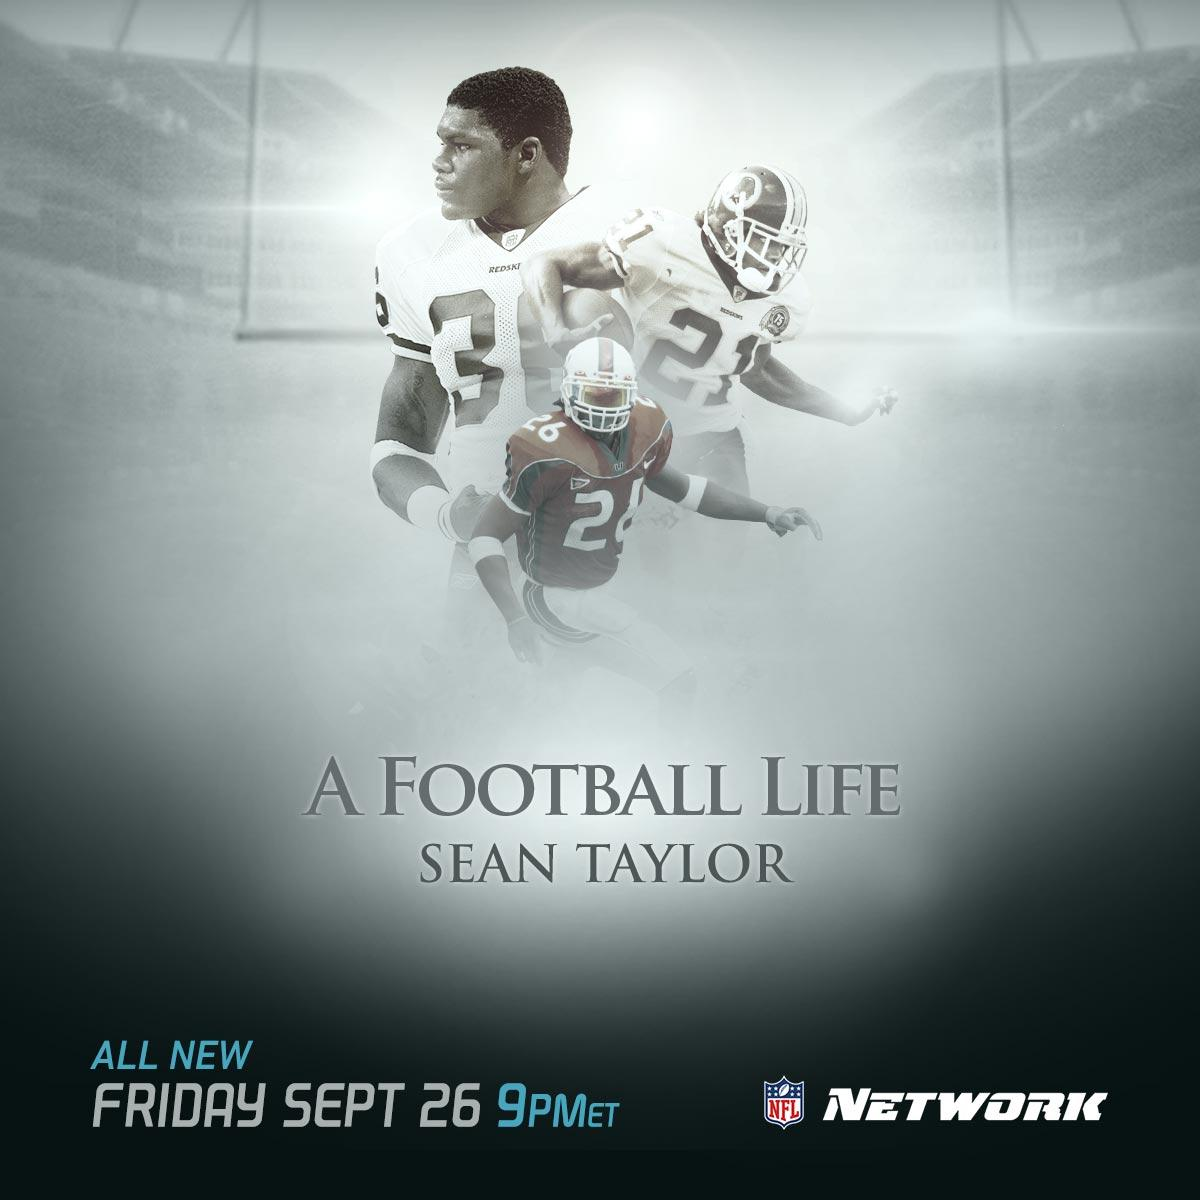 RT @Redskins: 'A Football Life' honors and remembers legendary #Redskins safety Sean Taylor this Friday at 9 p.m. on @NFLNetwork. http://t.co/25OFBODMdL